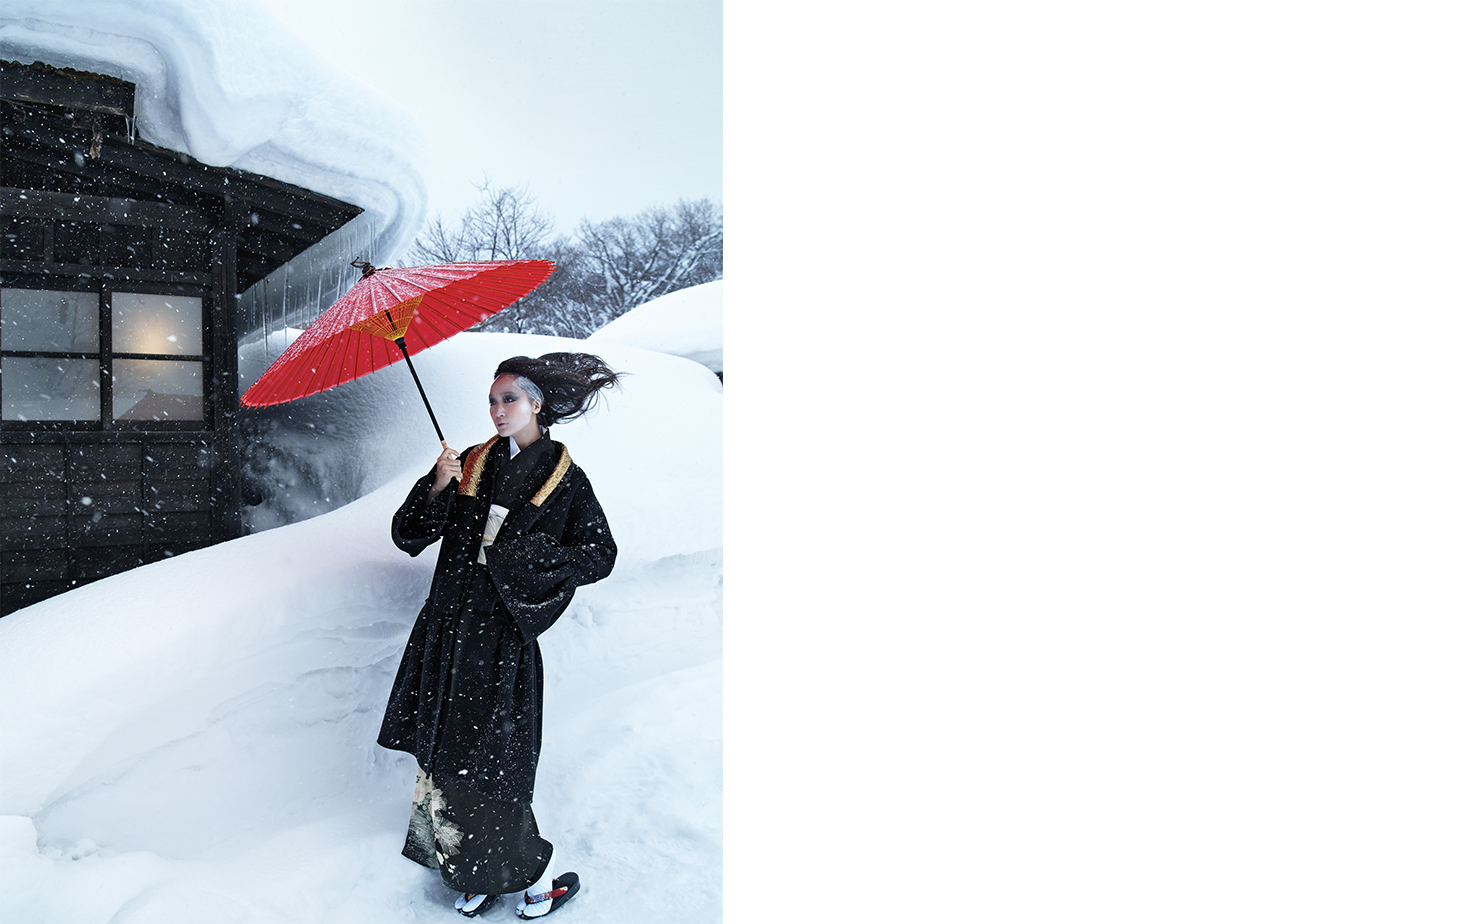 T Magazine SNOW BOUND   ART DIRECTOR David Sebbah FASHION EDITOR Tiina Laakkonen